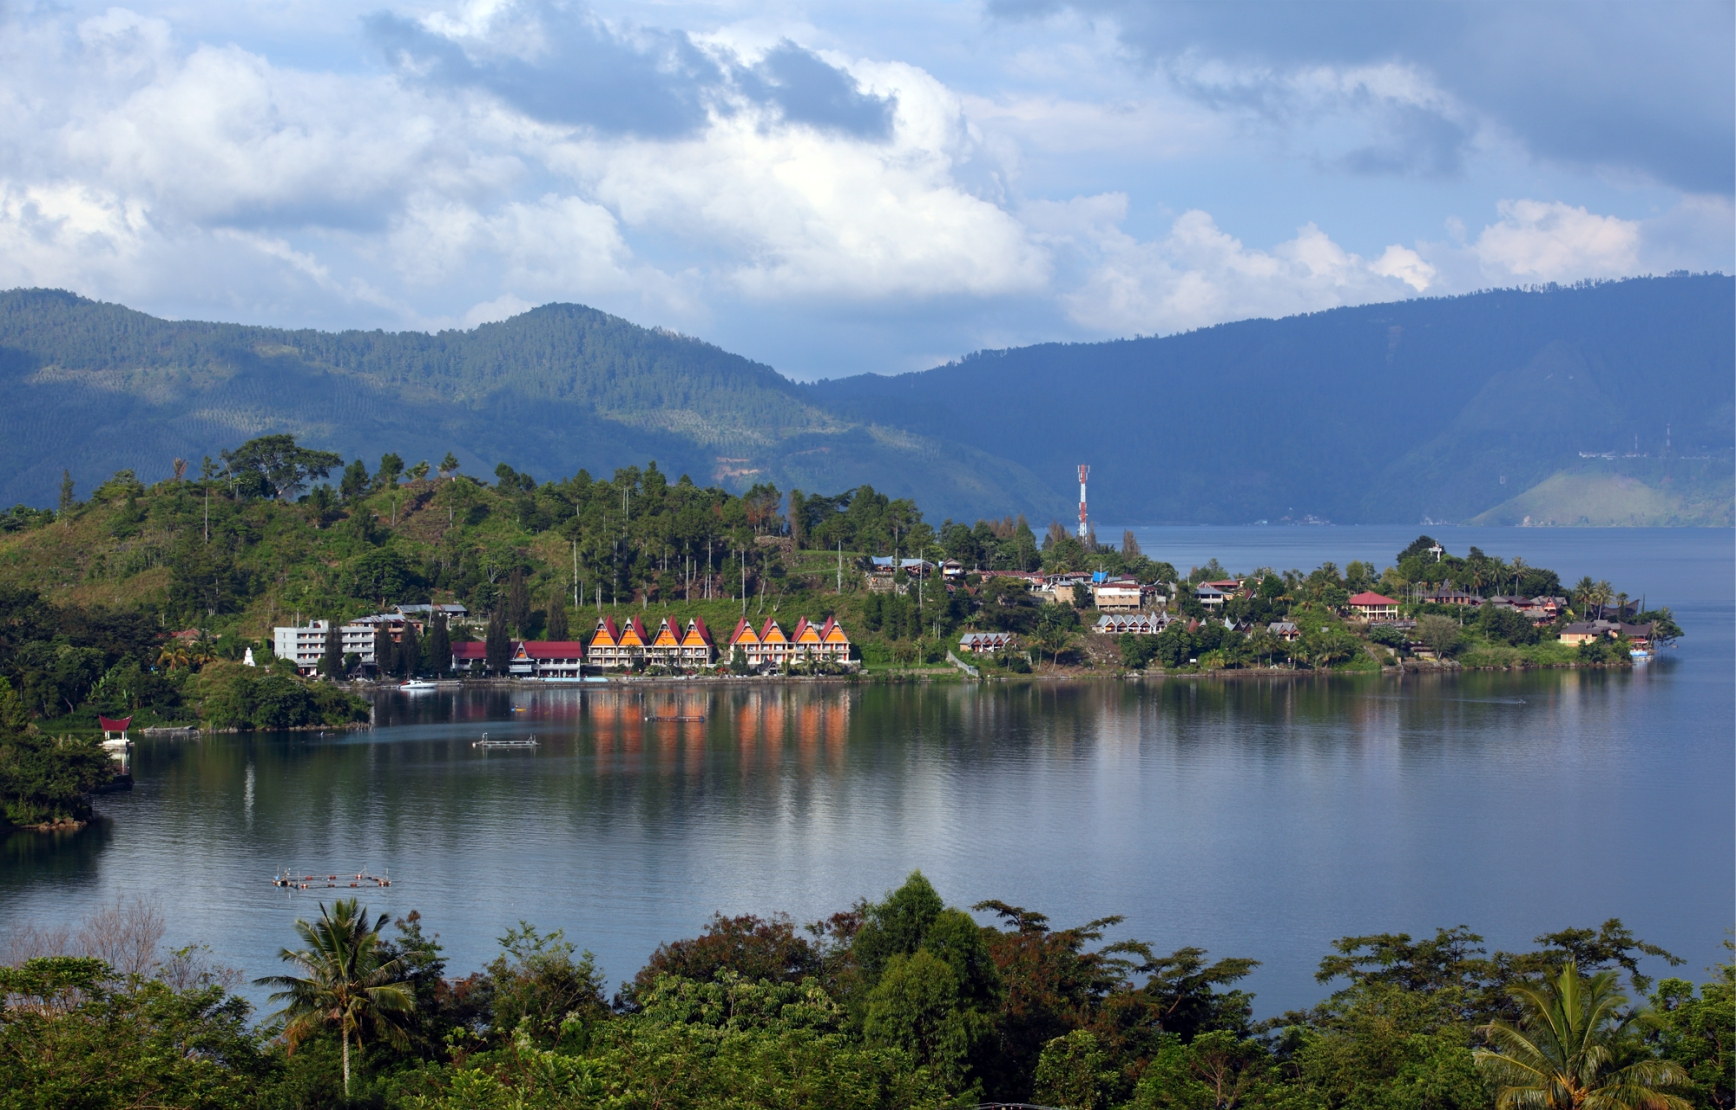 The Grandiose Toba Lake in North Sumatra Province